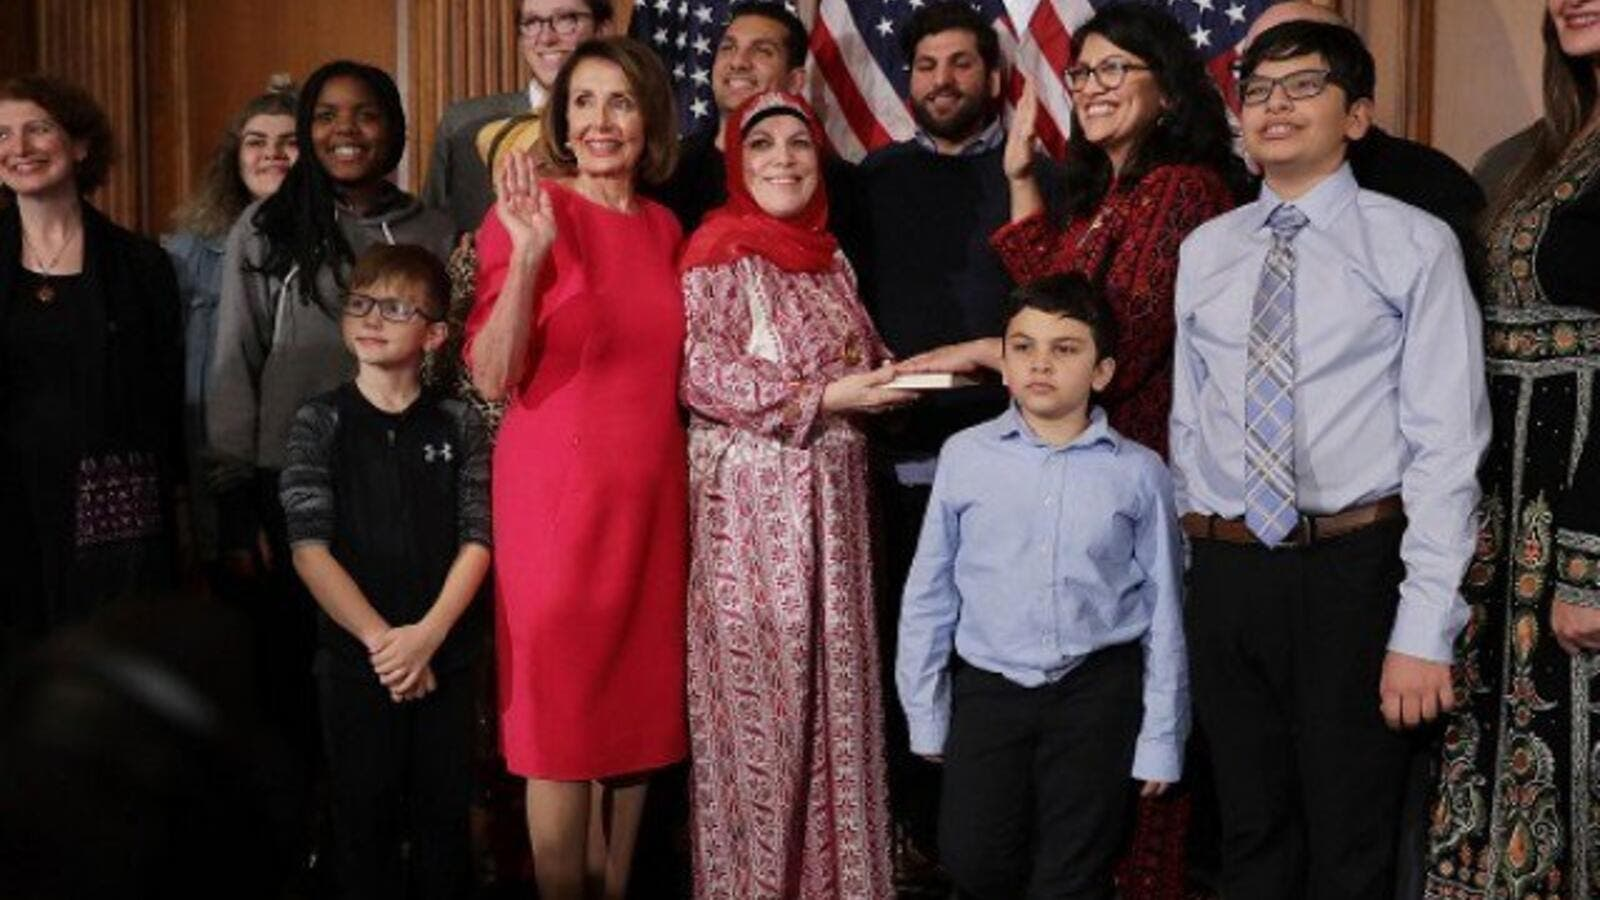 Speaker of the House Nancy Pelosi with Rep. Rashida Tlaib and her family in the Rayburn Room at the U.S. Capitol January 03, 2019 in Washington, DC. (AFP)